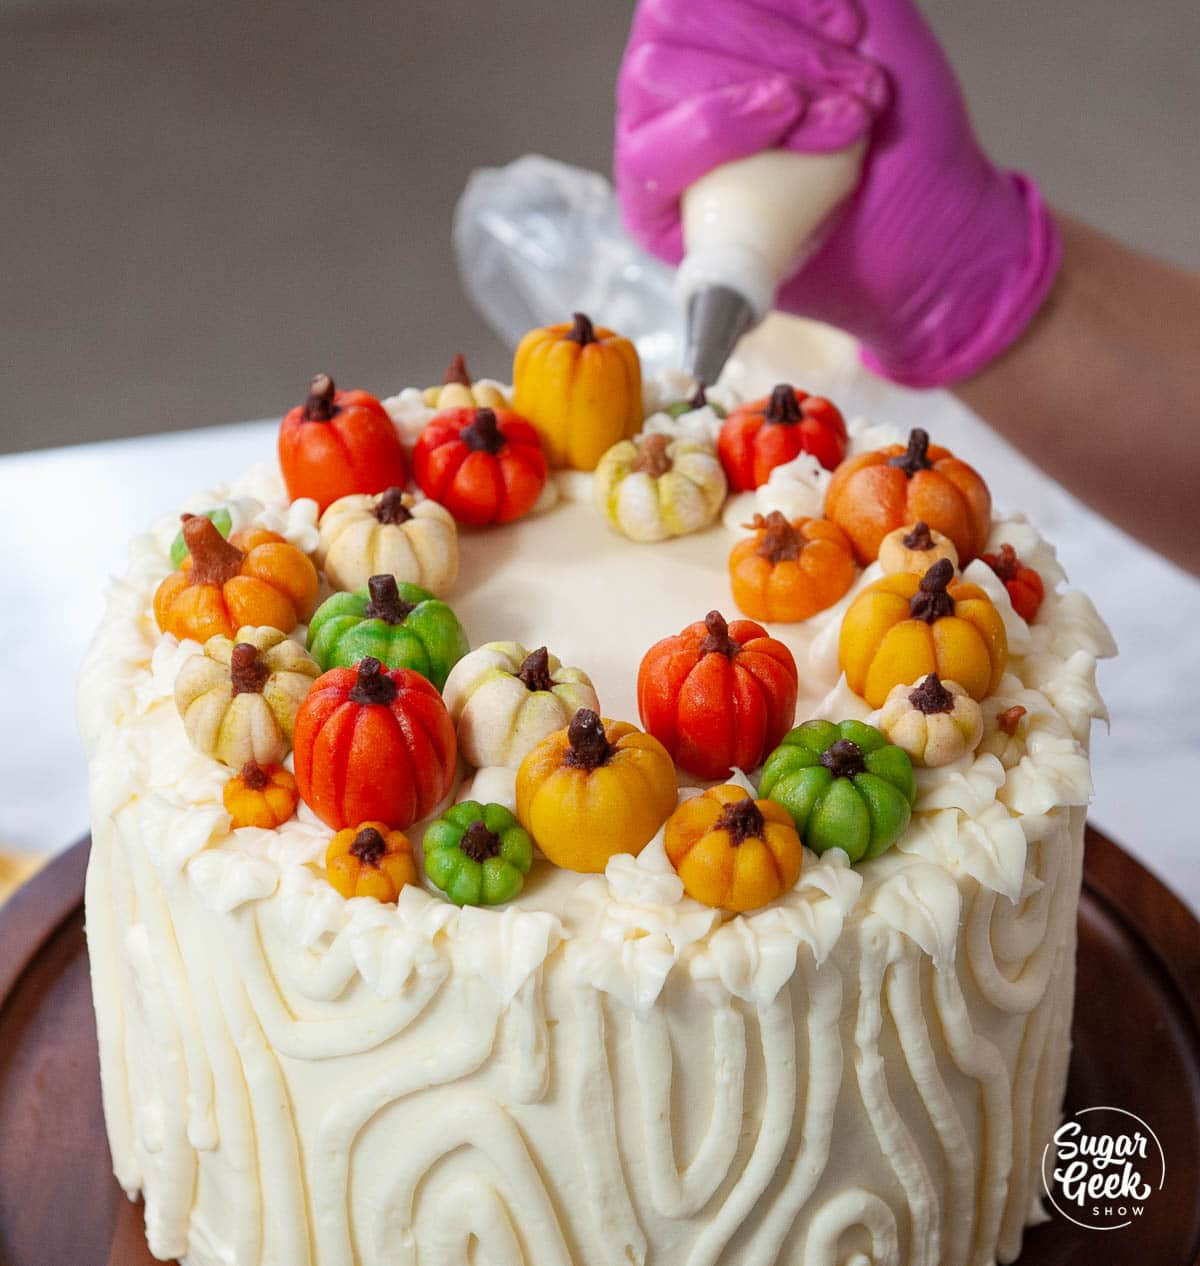 piping frosting leaves around the marzipan pumpkins